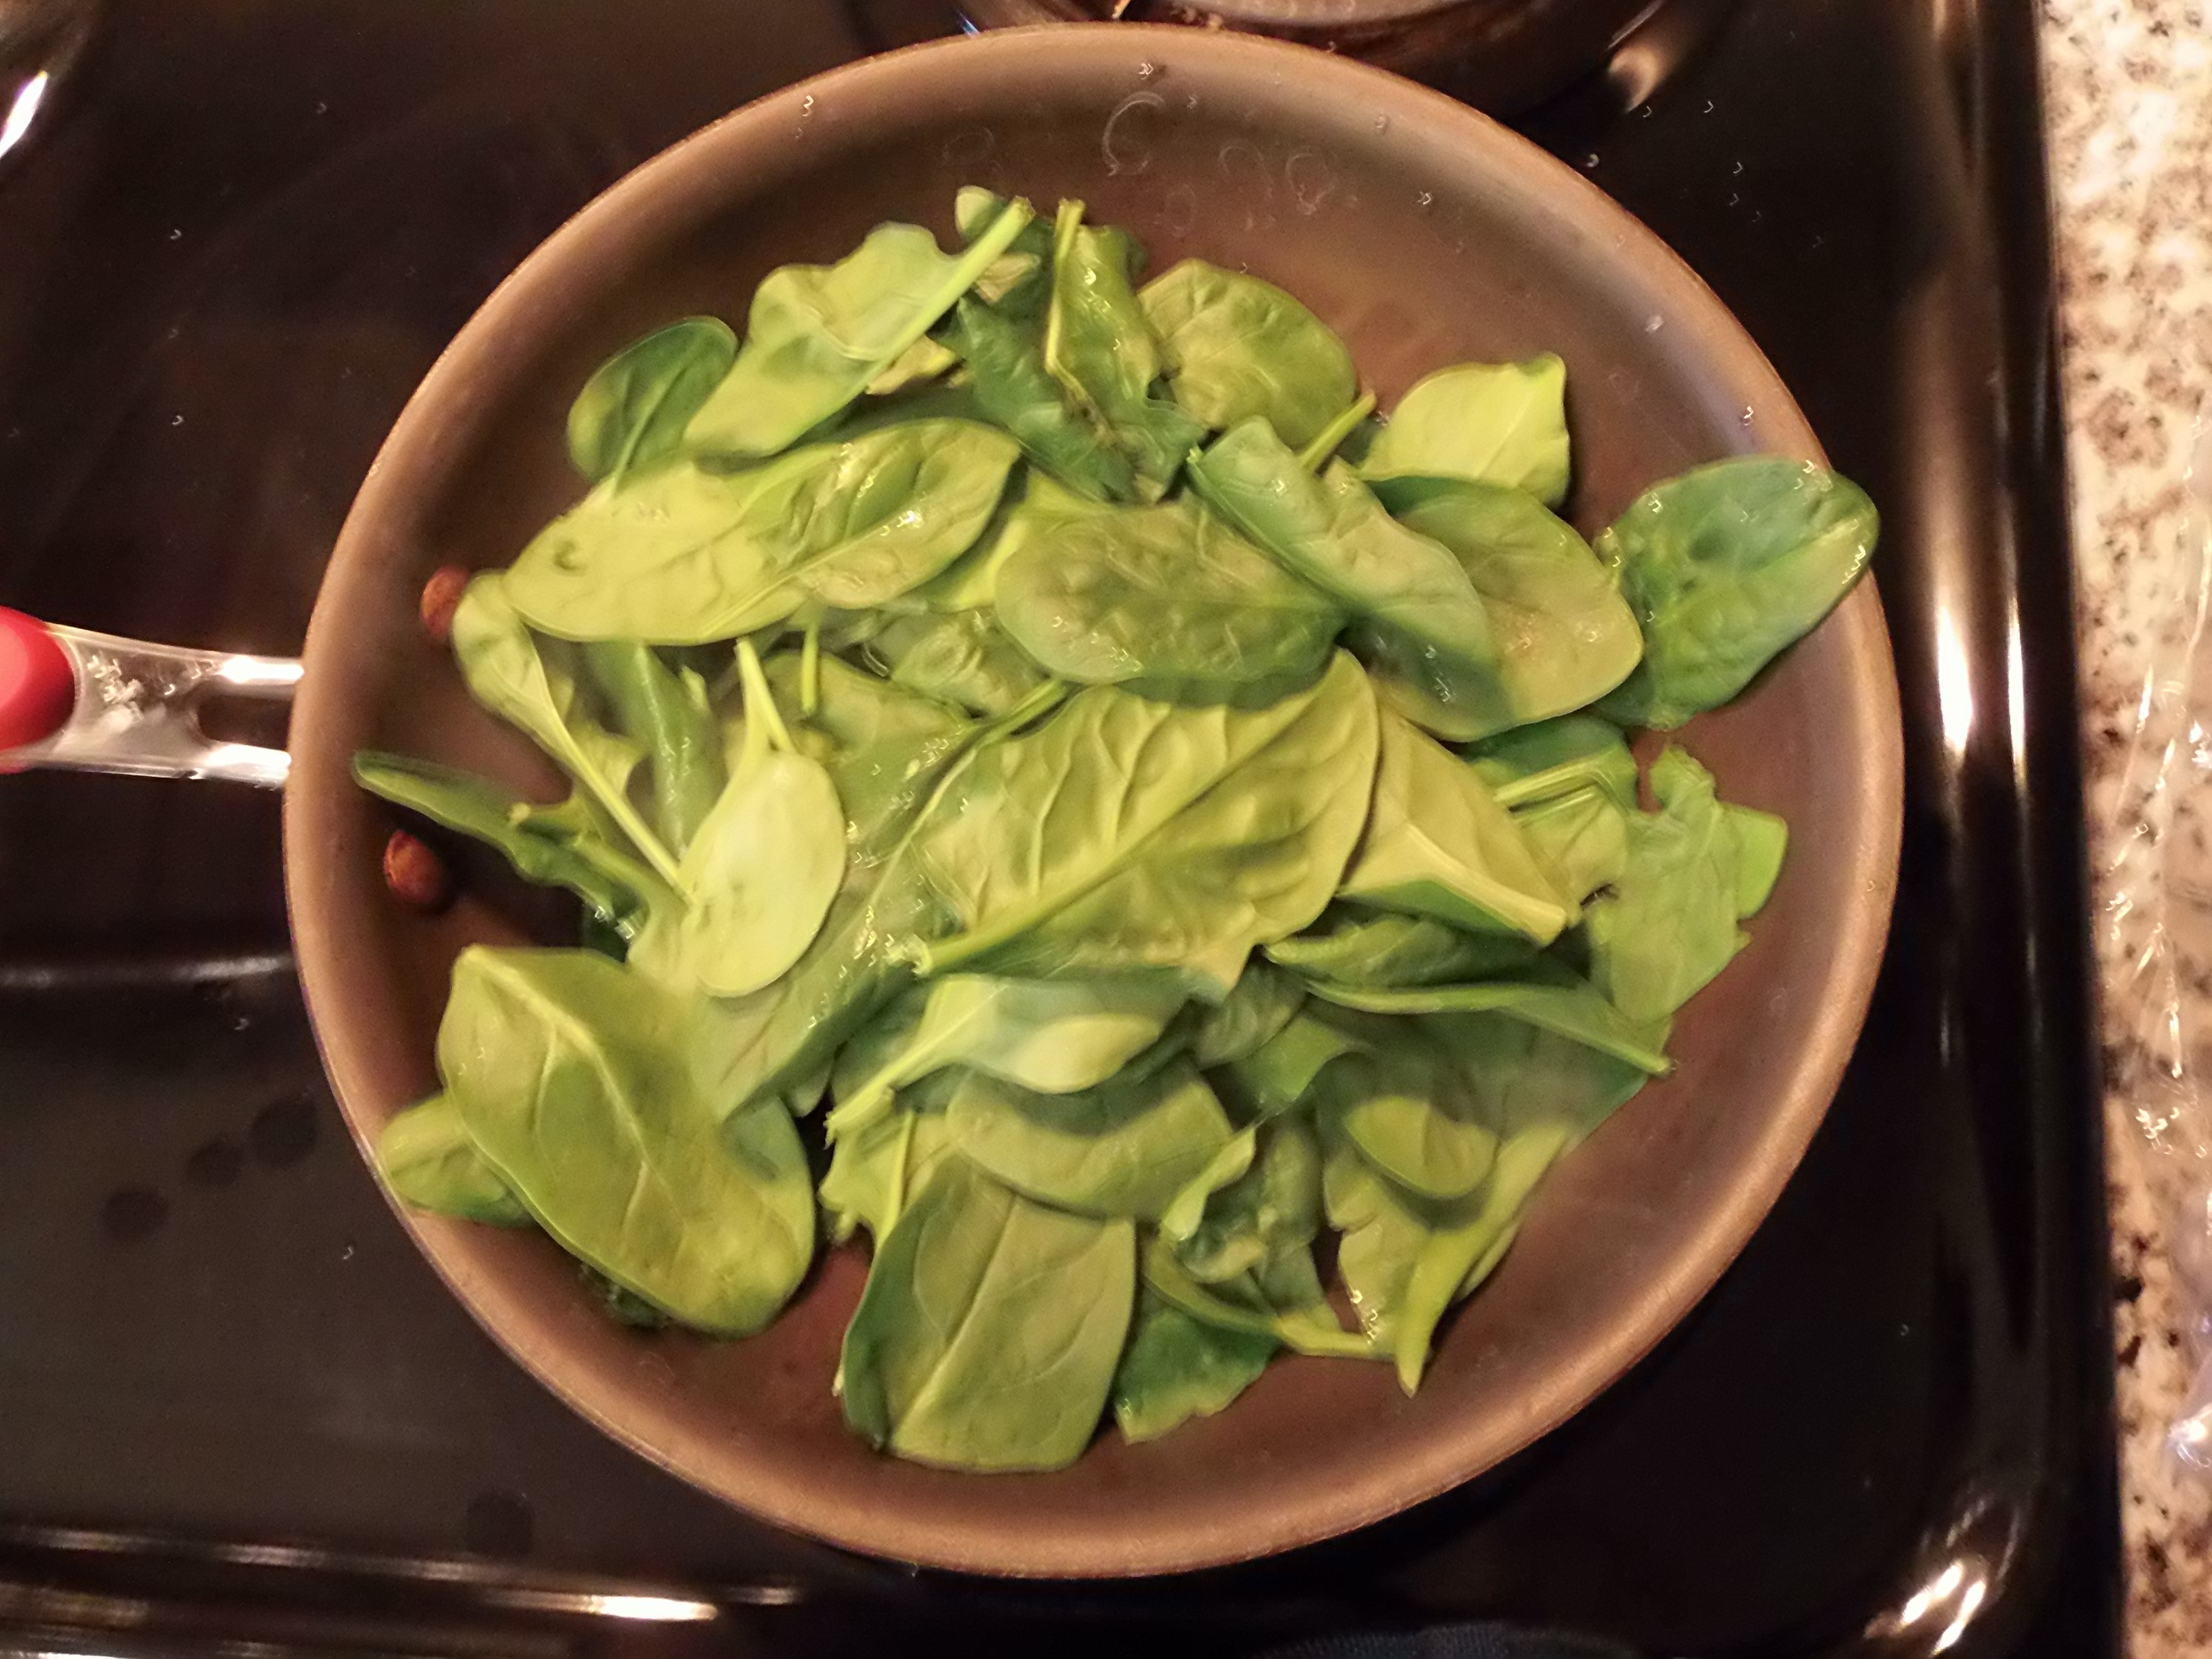 I first cooked down my spinach, so it was nice and soft.